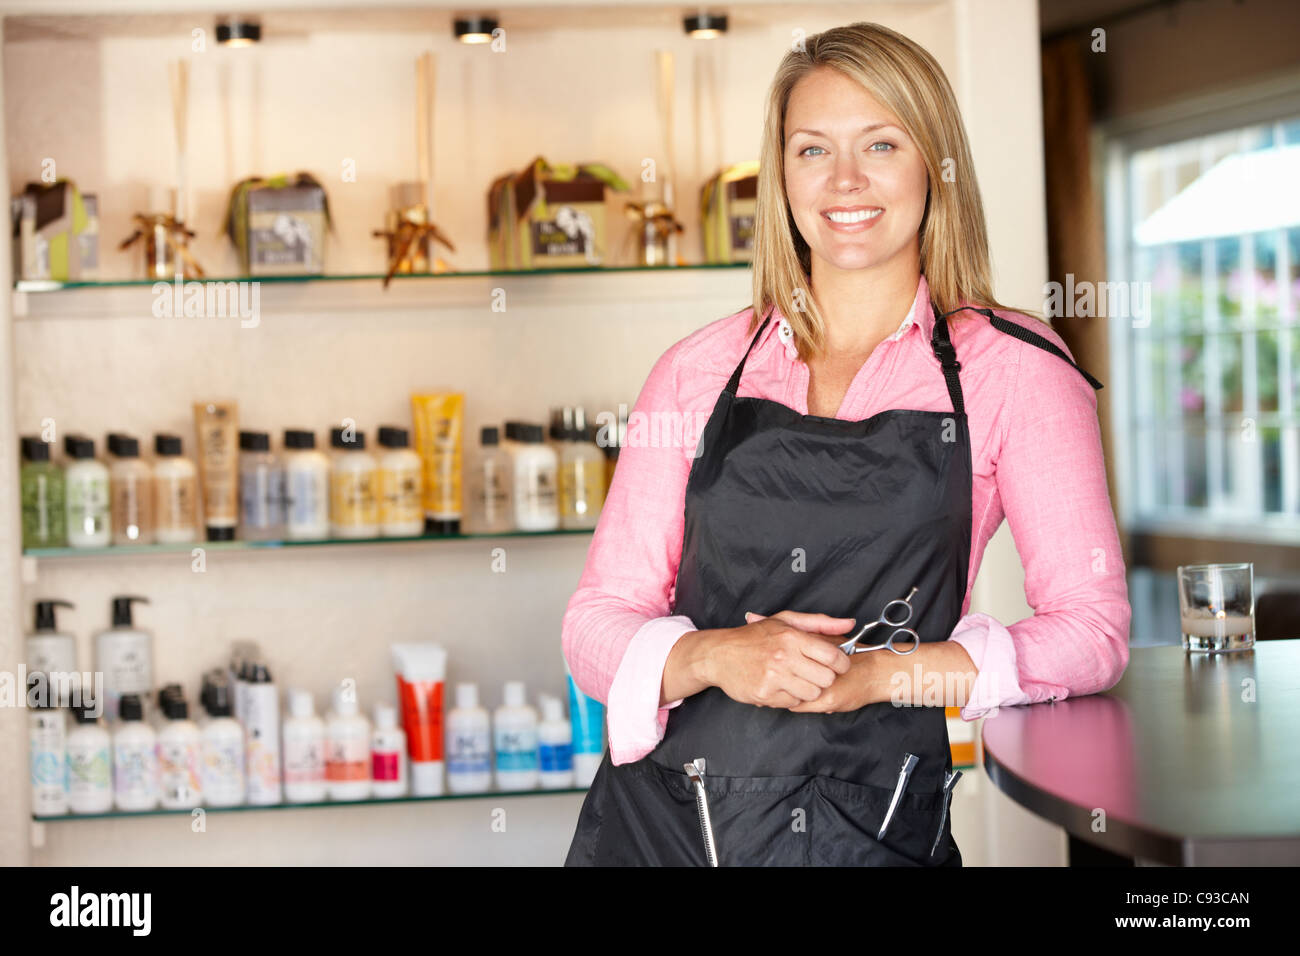 Woman working in hairdressing salon - Stock Image